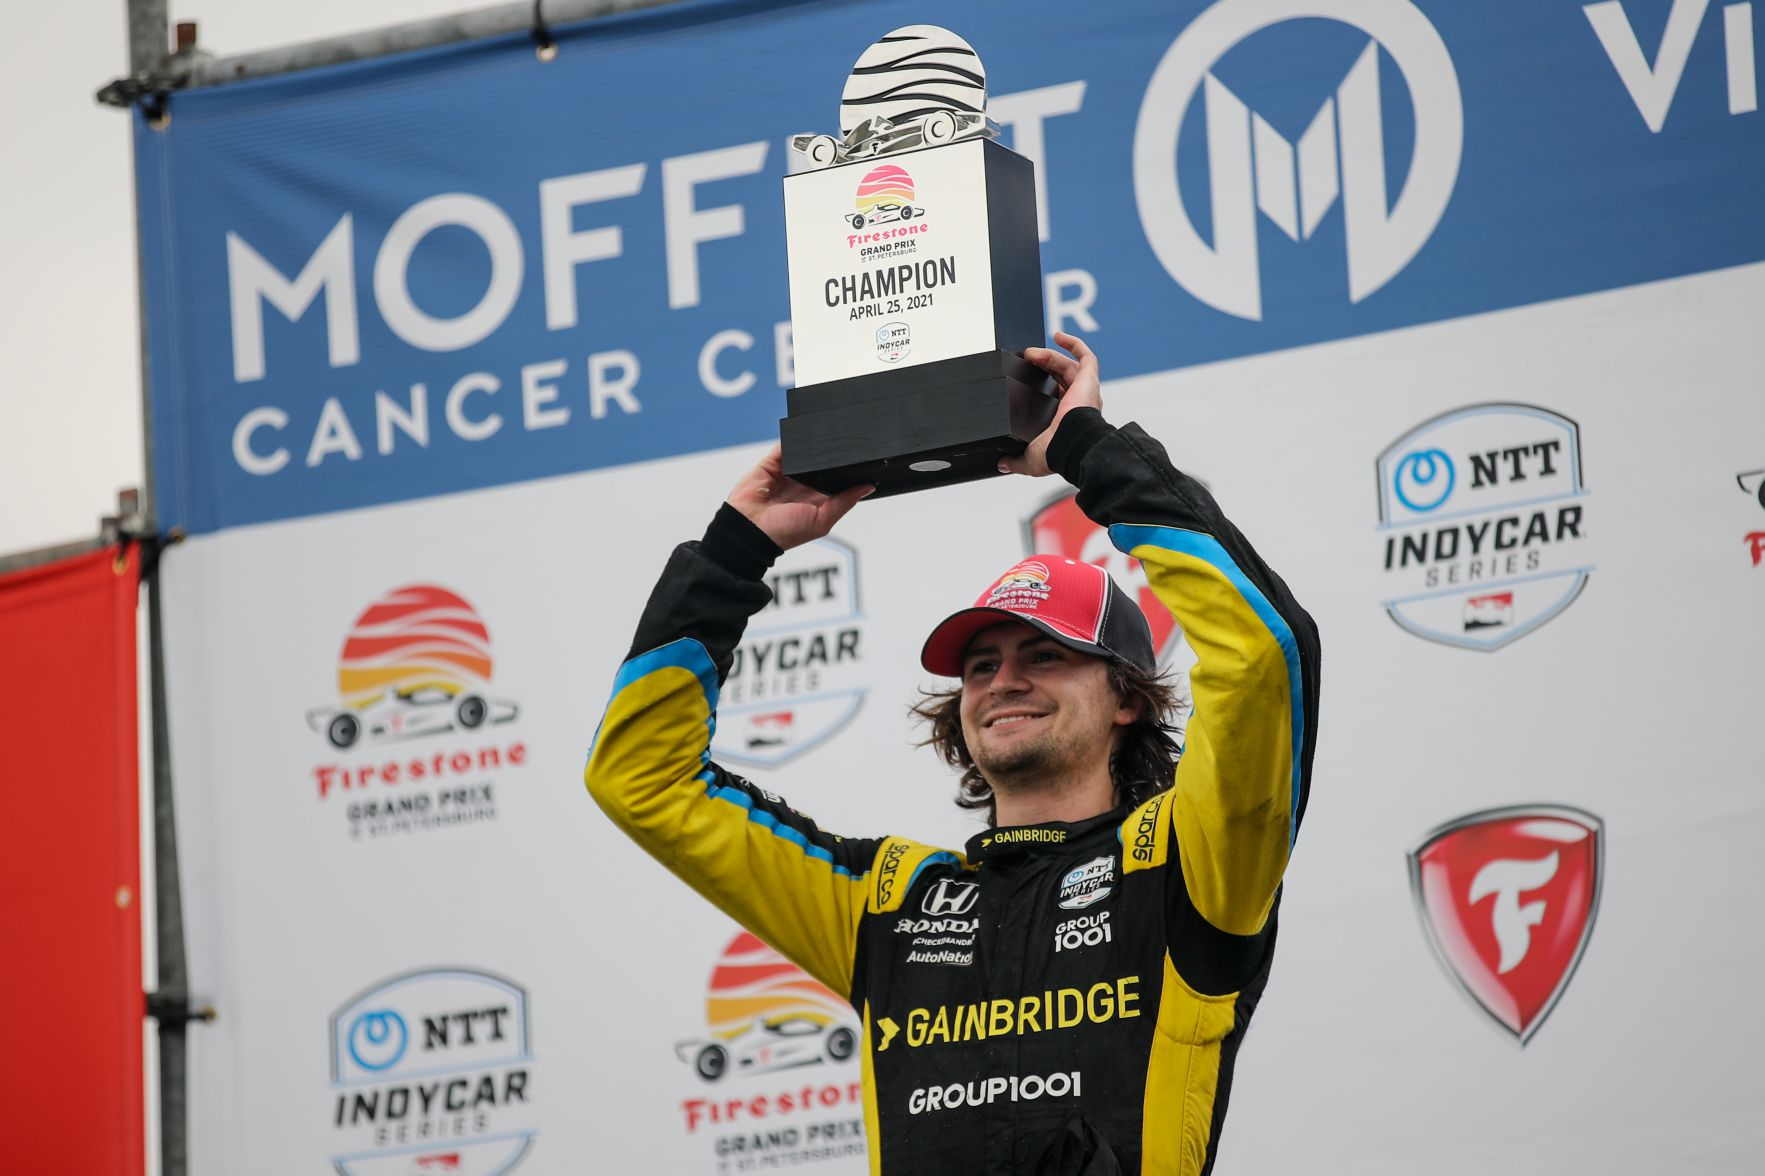 Colton Herta raises the trophy after winning the Firestone Grand Prix of St Petersburg. [Joe Skibinski Photo]